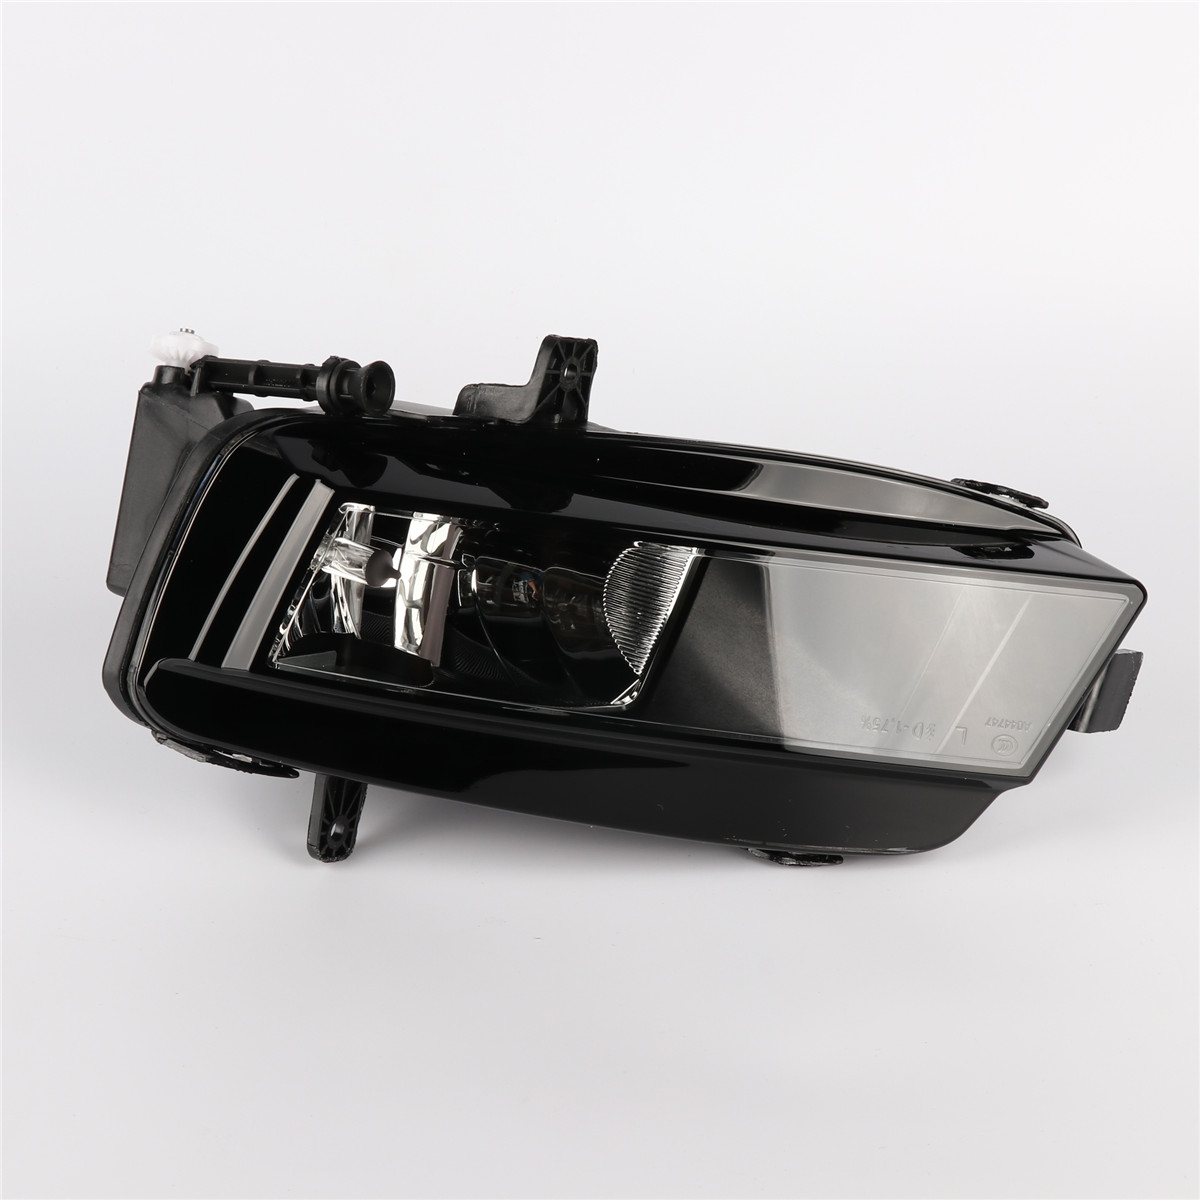 OEM 1Pcs Front Left Fog Light Lamp LED Driving Light L5GG 941 661 for Volkswagen Golf MK7 2pcs oem left